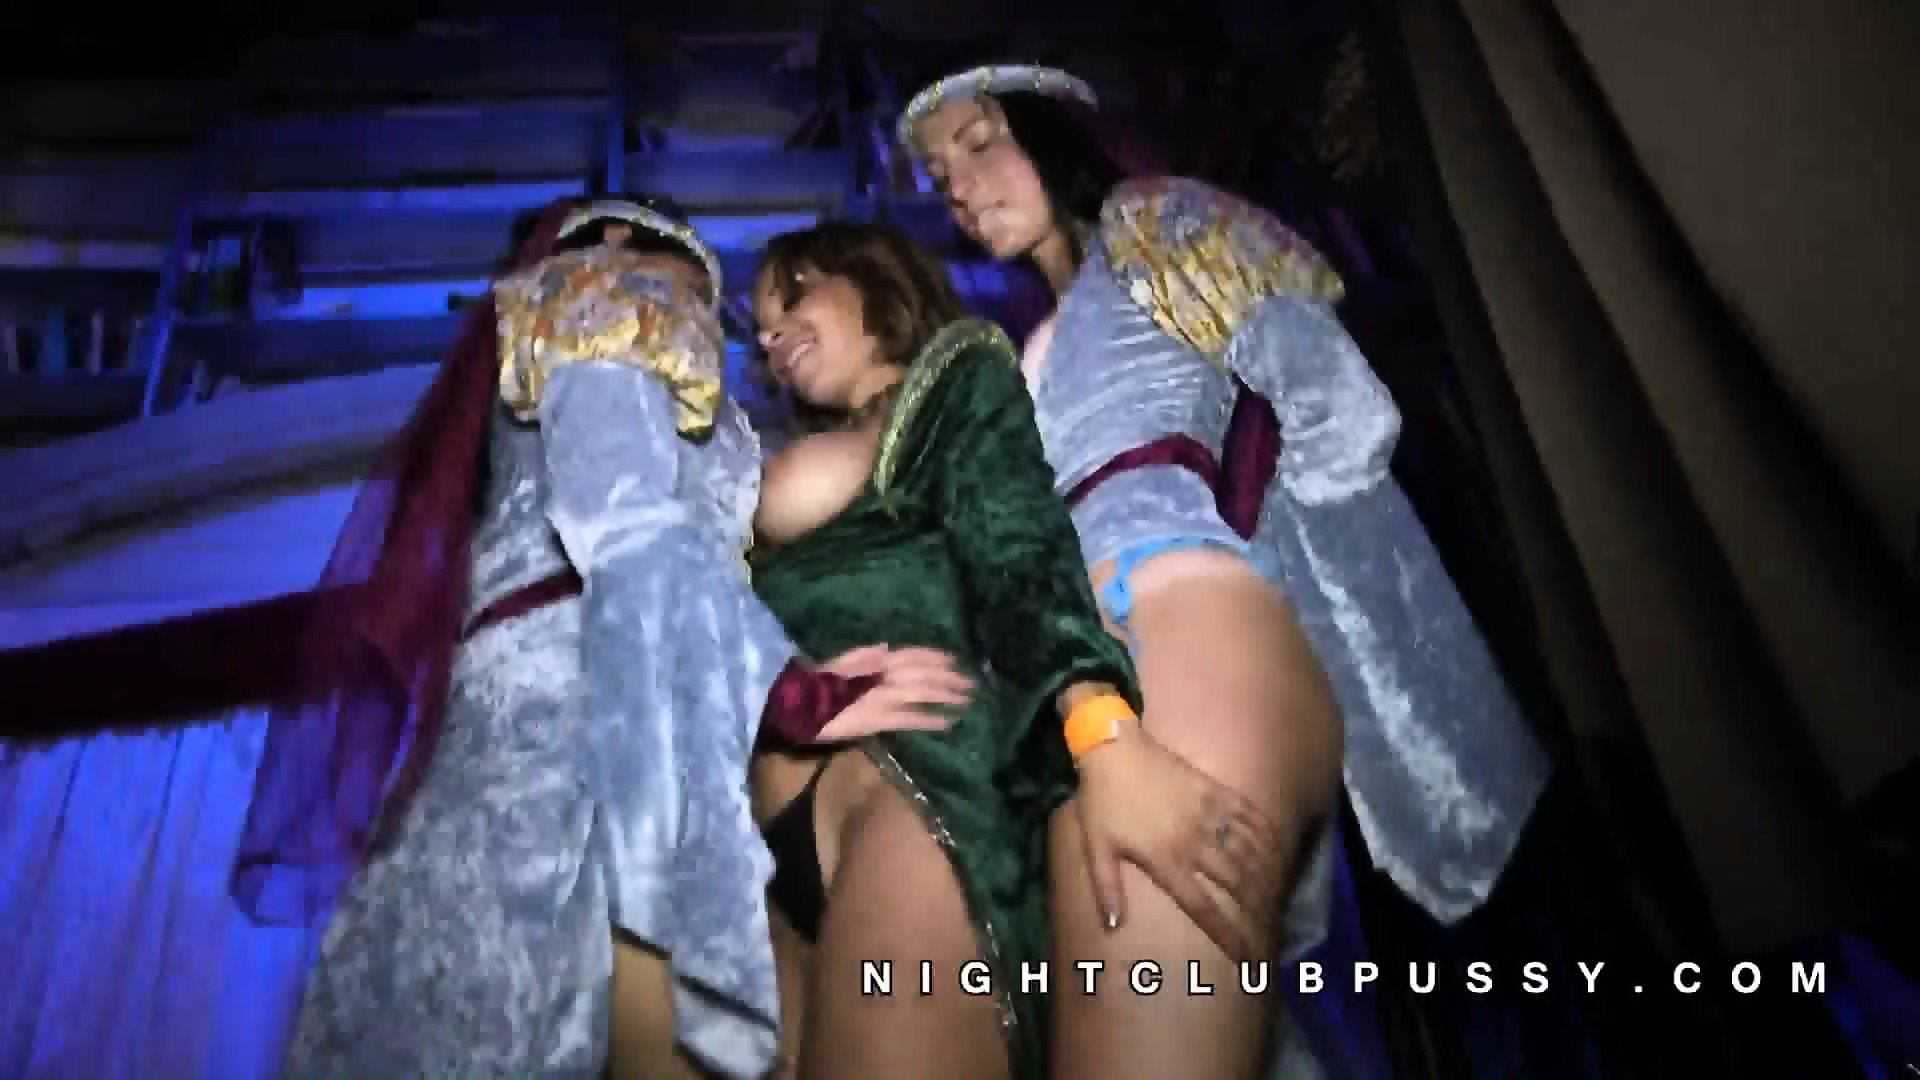 Game of thrones orgy